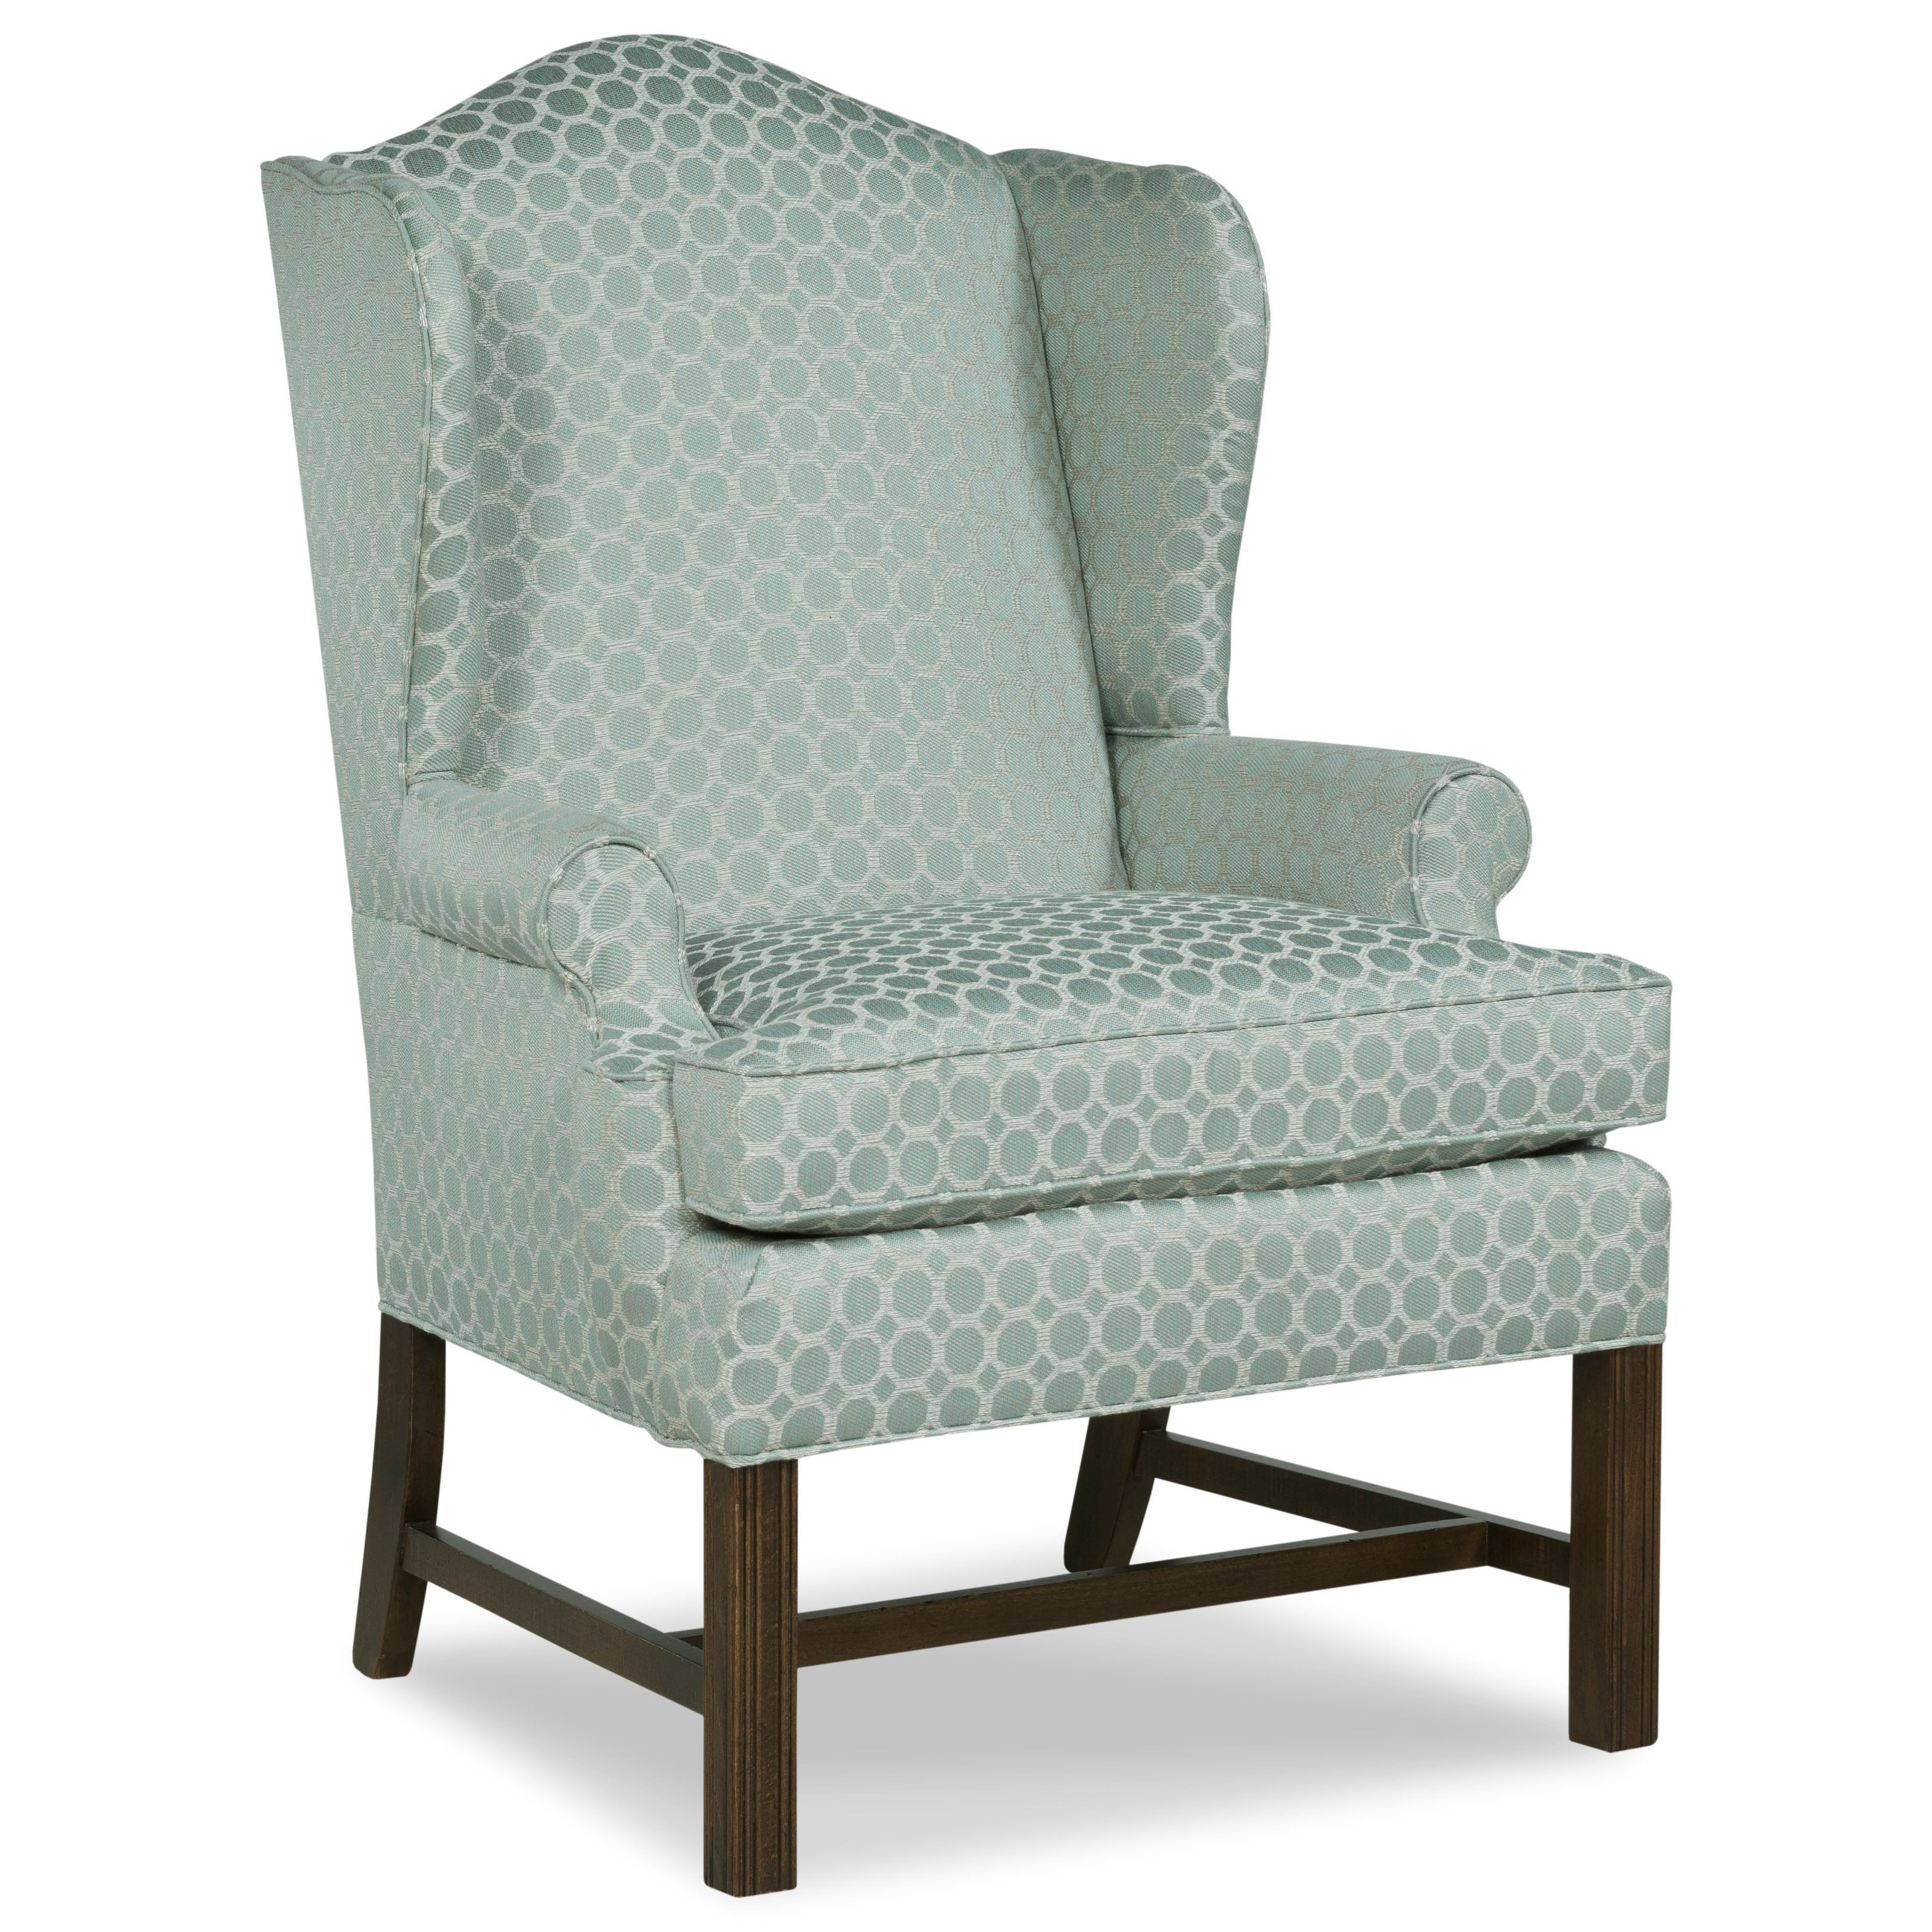 Fairfield Chair Fairfield Chairs Upholstered Wing Chair Olinde 39s